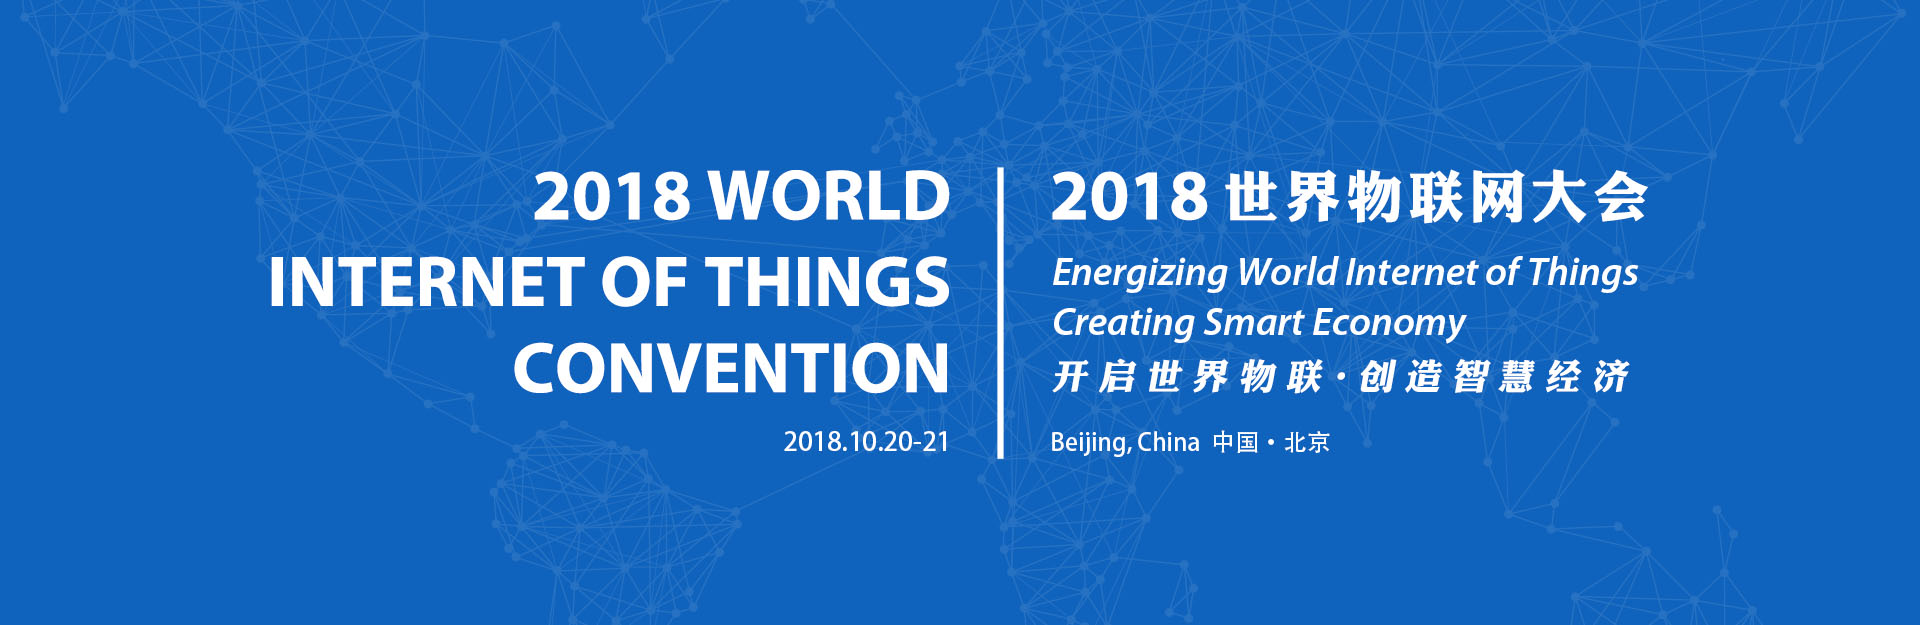 2018 World Internet of Things Convention(WIOTC)